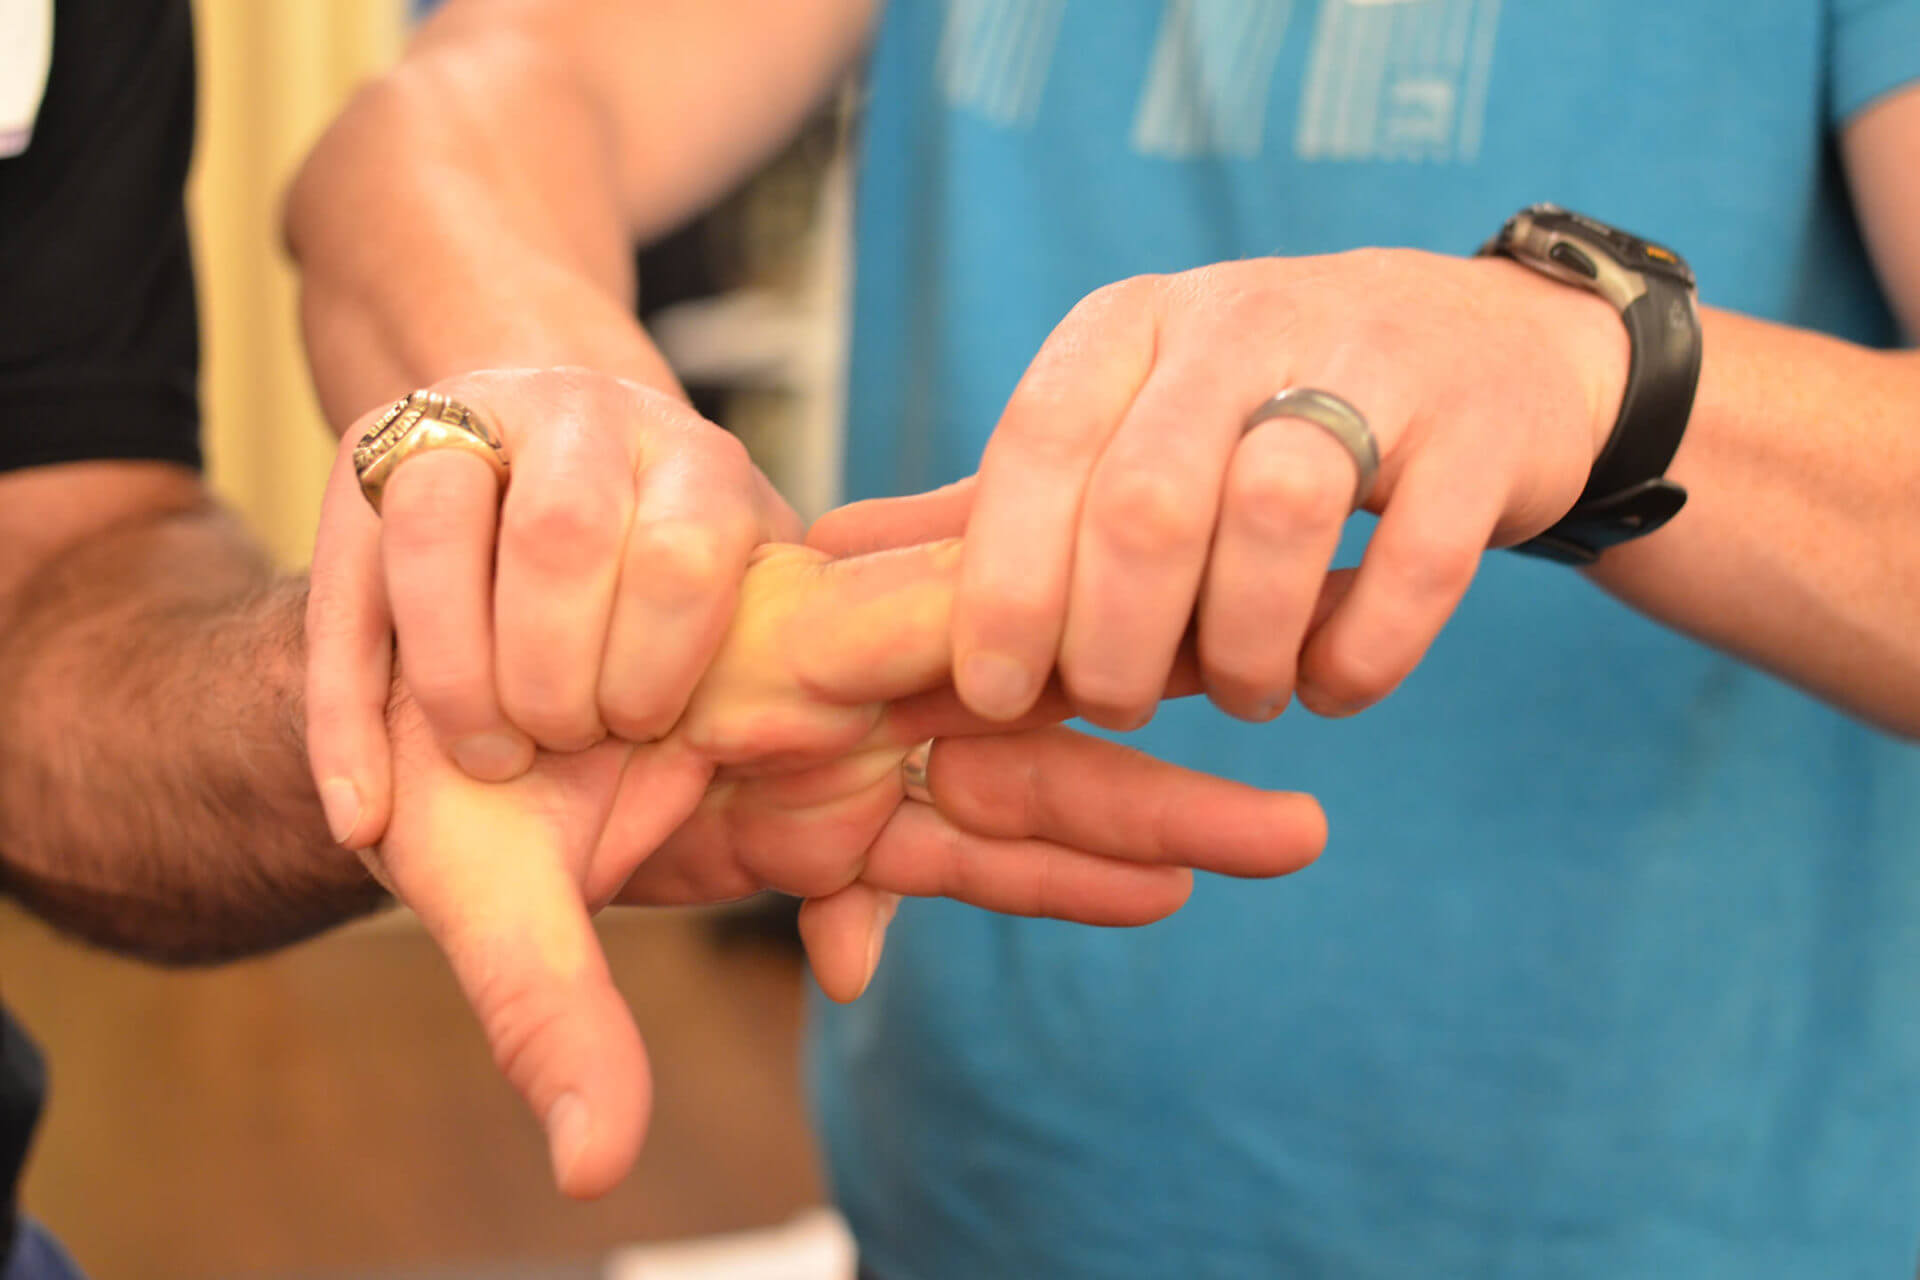 ART provider performing hand treatment on patient